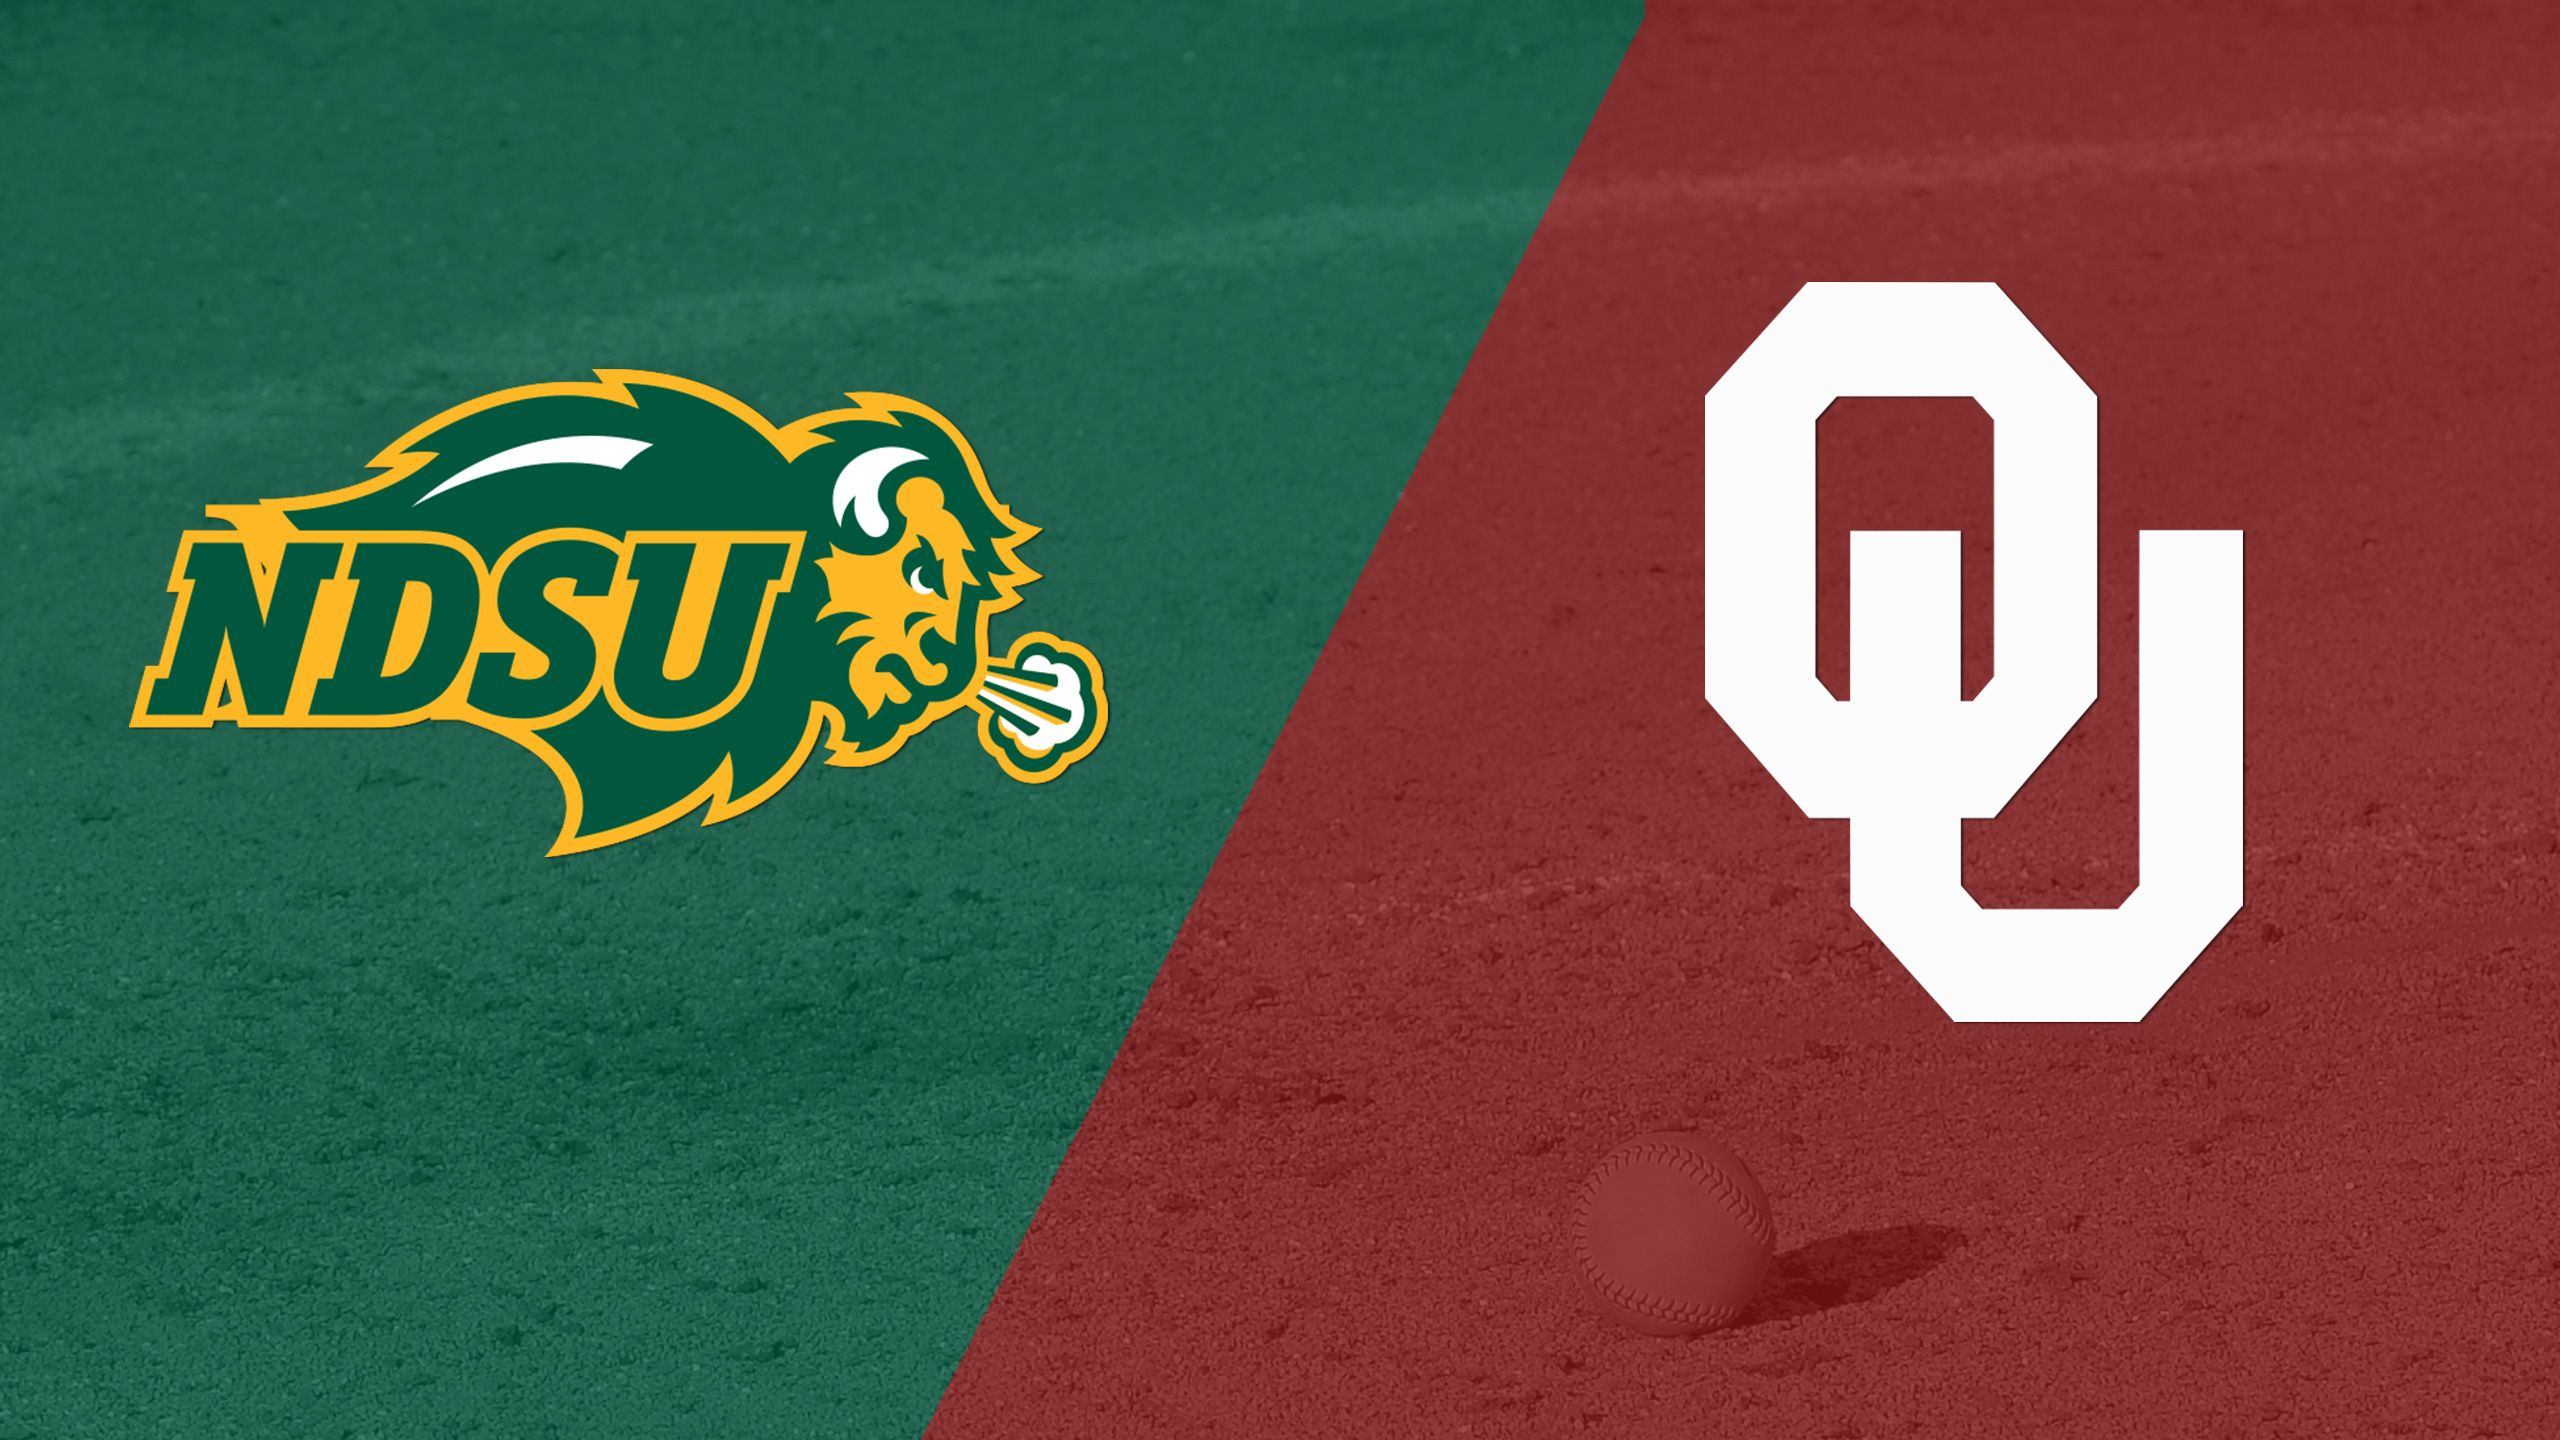 North Dakota State vs. #10 Oklahoma (Site 15 / Game 2) (NCAA Softball Championship)